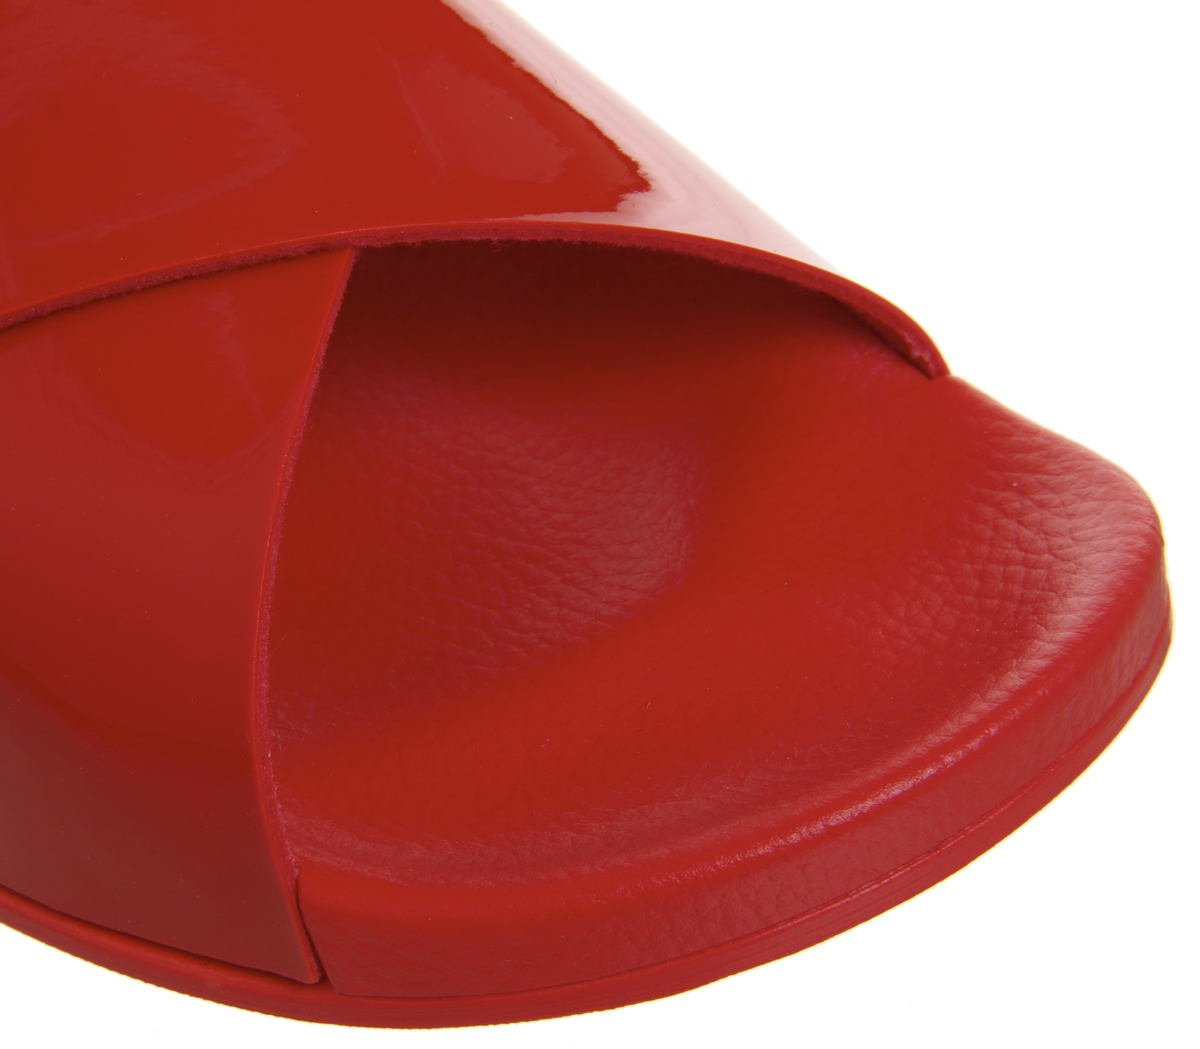 40929a46b Womens Office Splash Cross Strap Colour Drench Slides Red Sandals